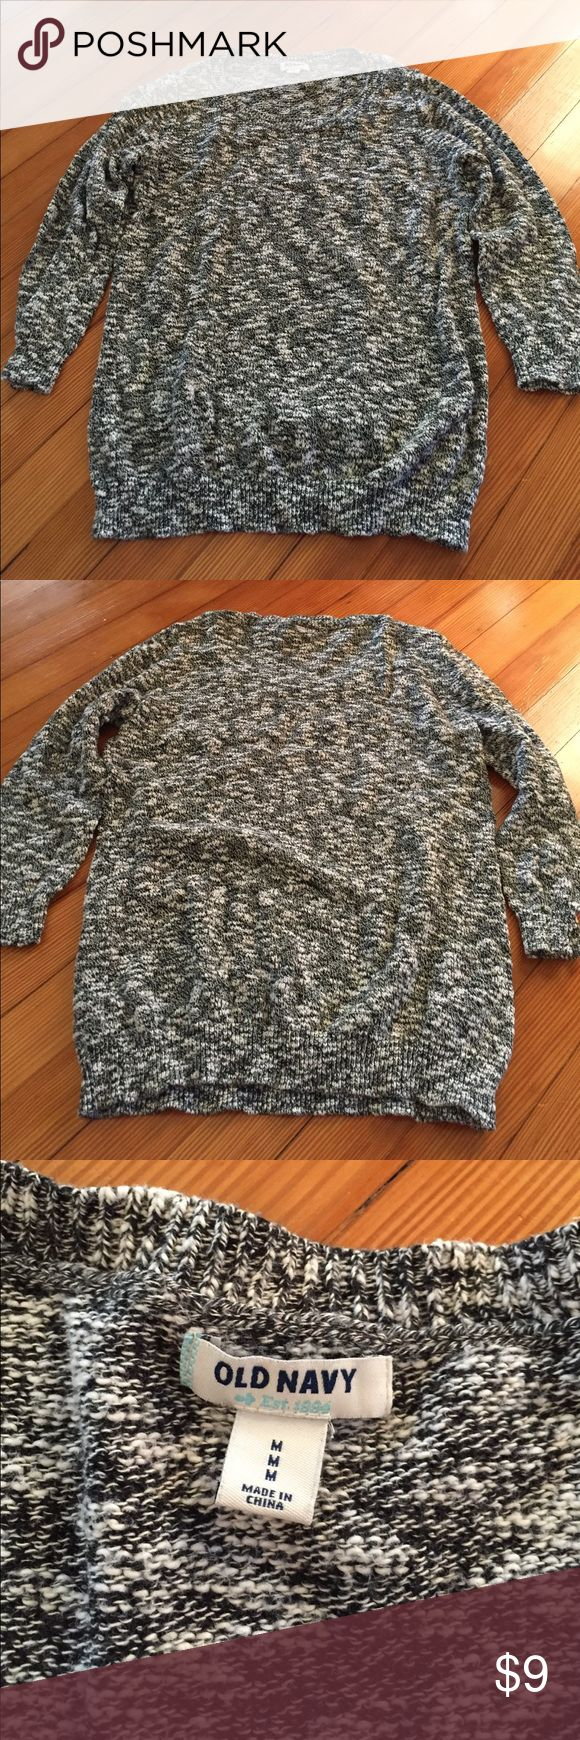 Old Navy 3/4 sleeved marled sweater Marled sweater, 3/4 length sleeves, worn twice!! Old Navy Sweaters Crew & Scoop Necks